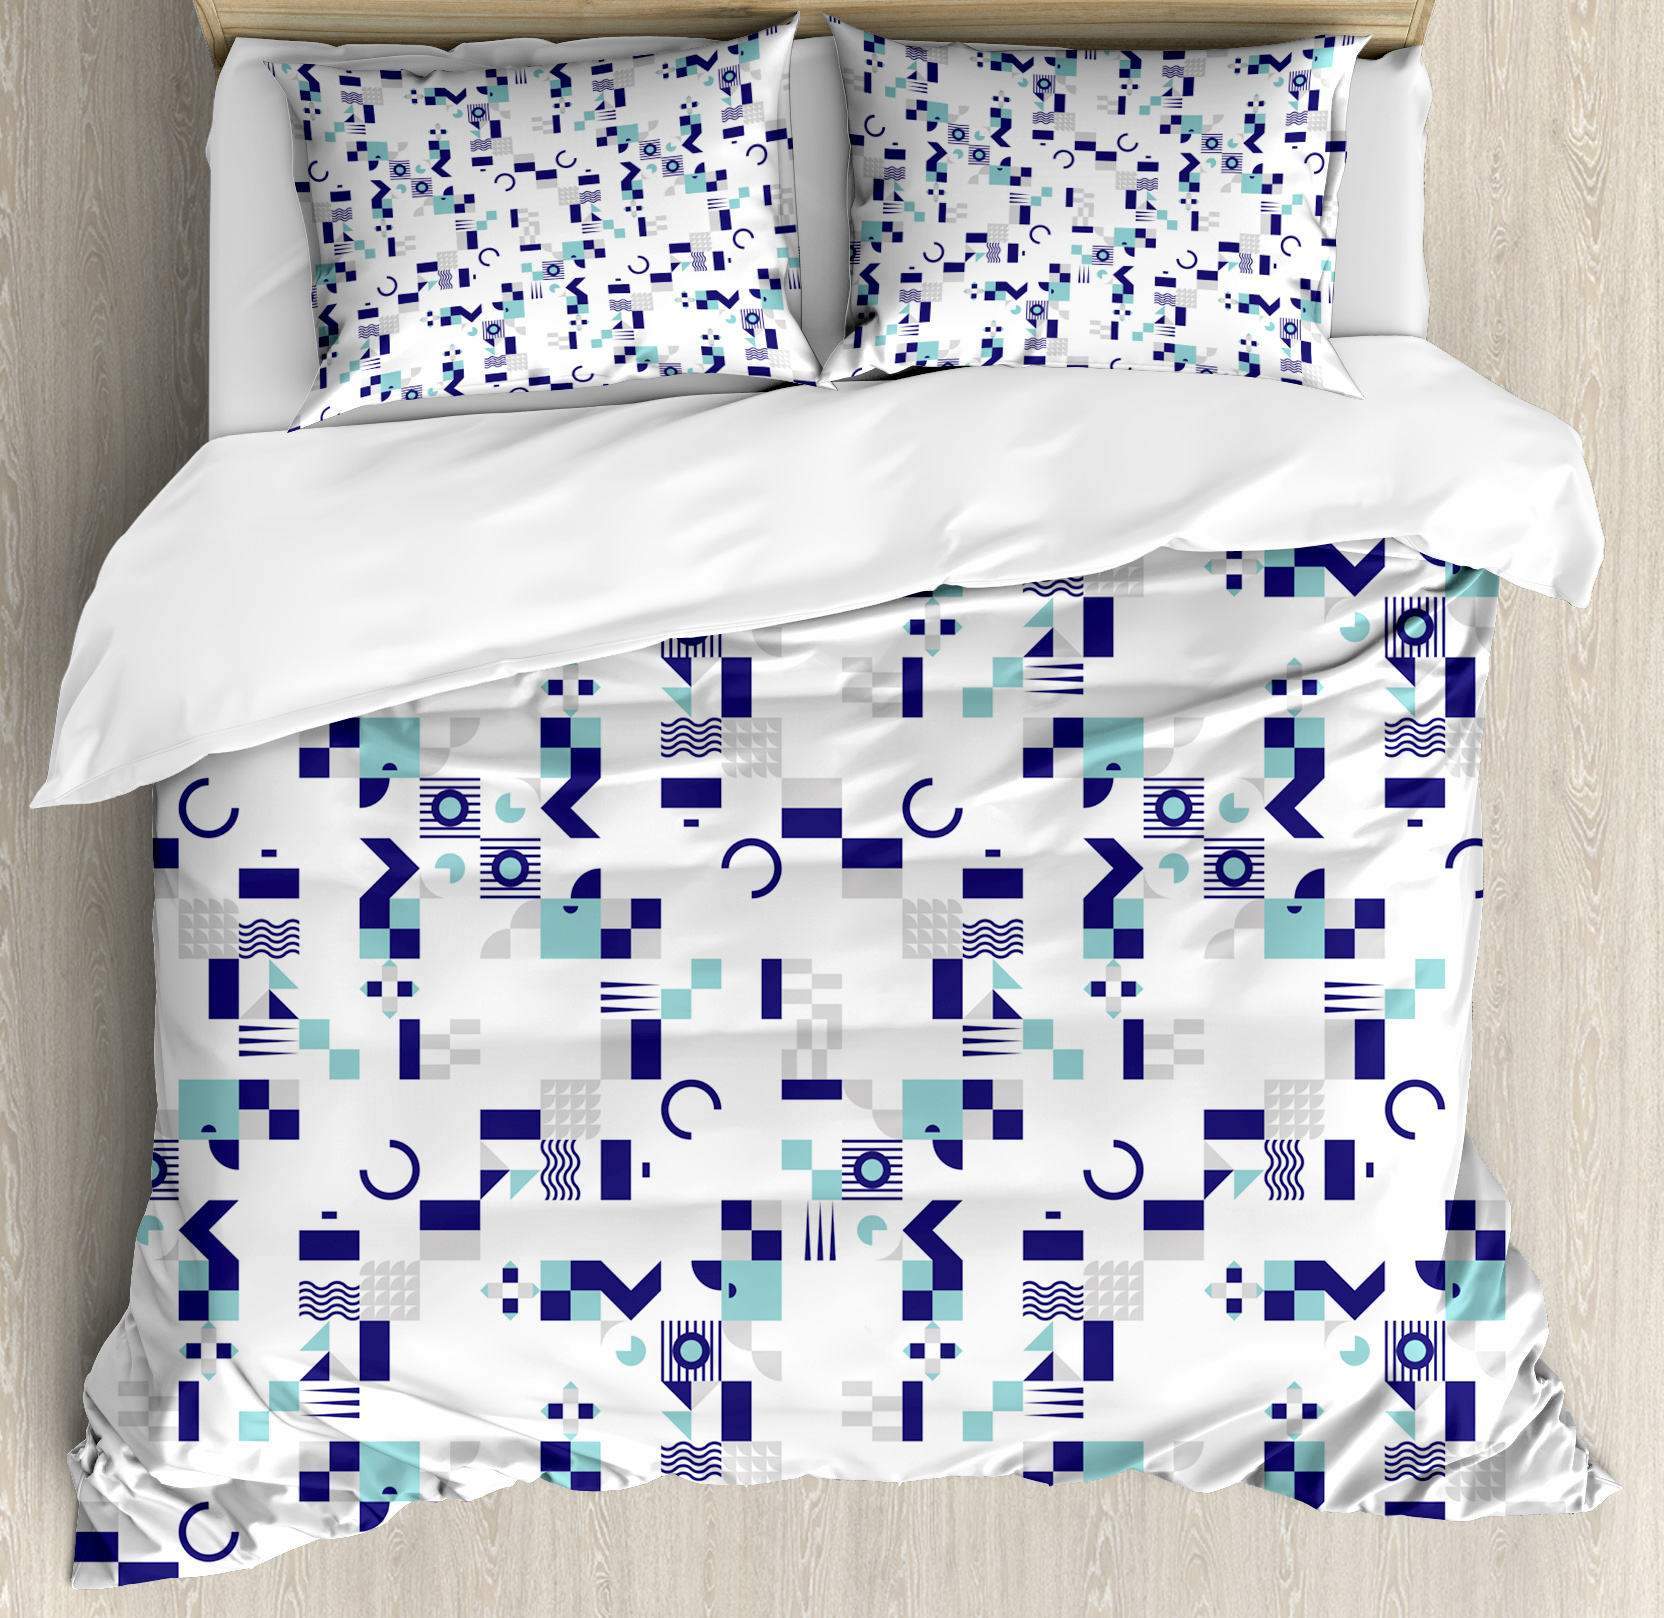 King Duvet Mid Century King Size Duvet Cover Set Art Deco Inspired Pattern From Seventies With Geometrical Shapes Decorative 3 Piece Bedding Set With 2 Pillow